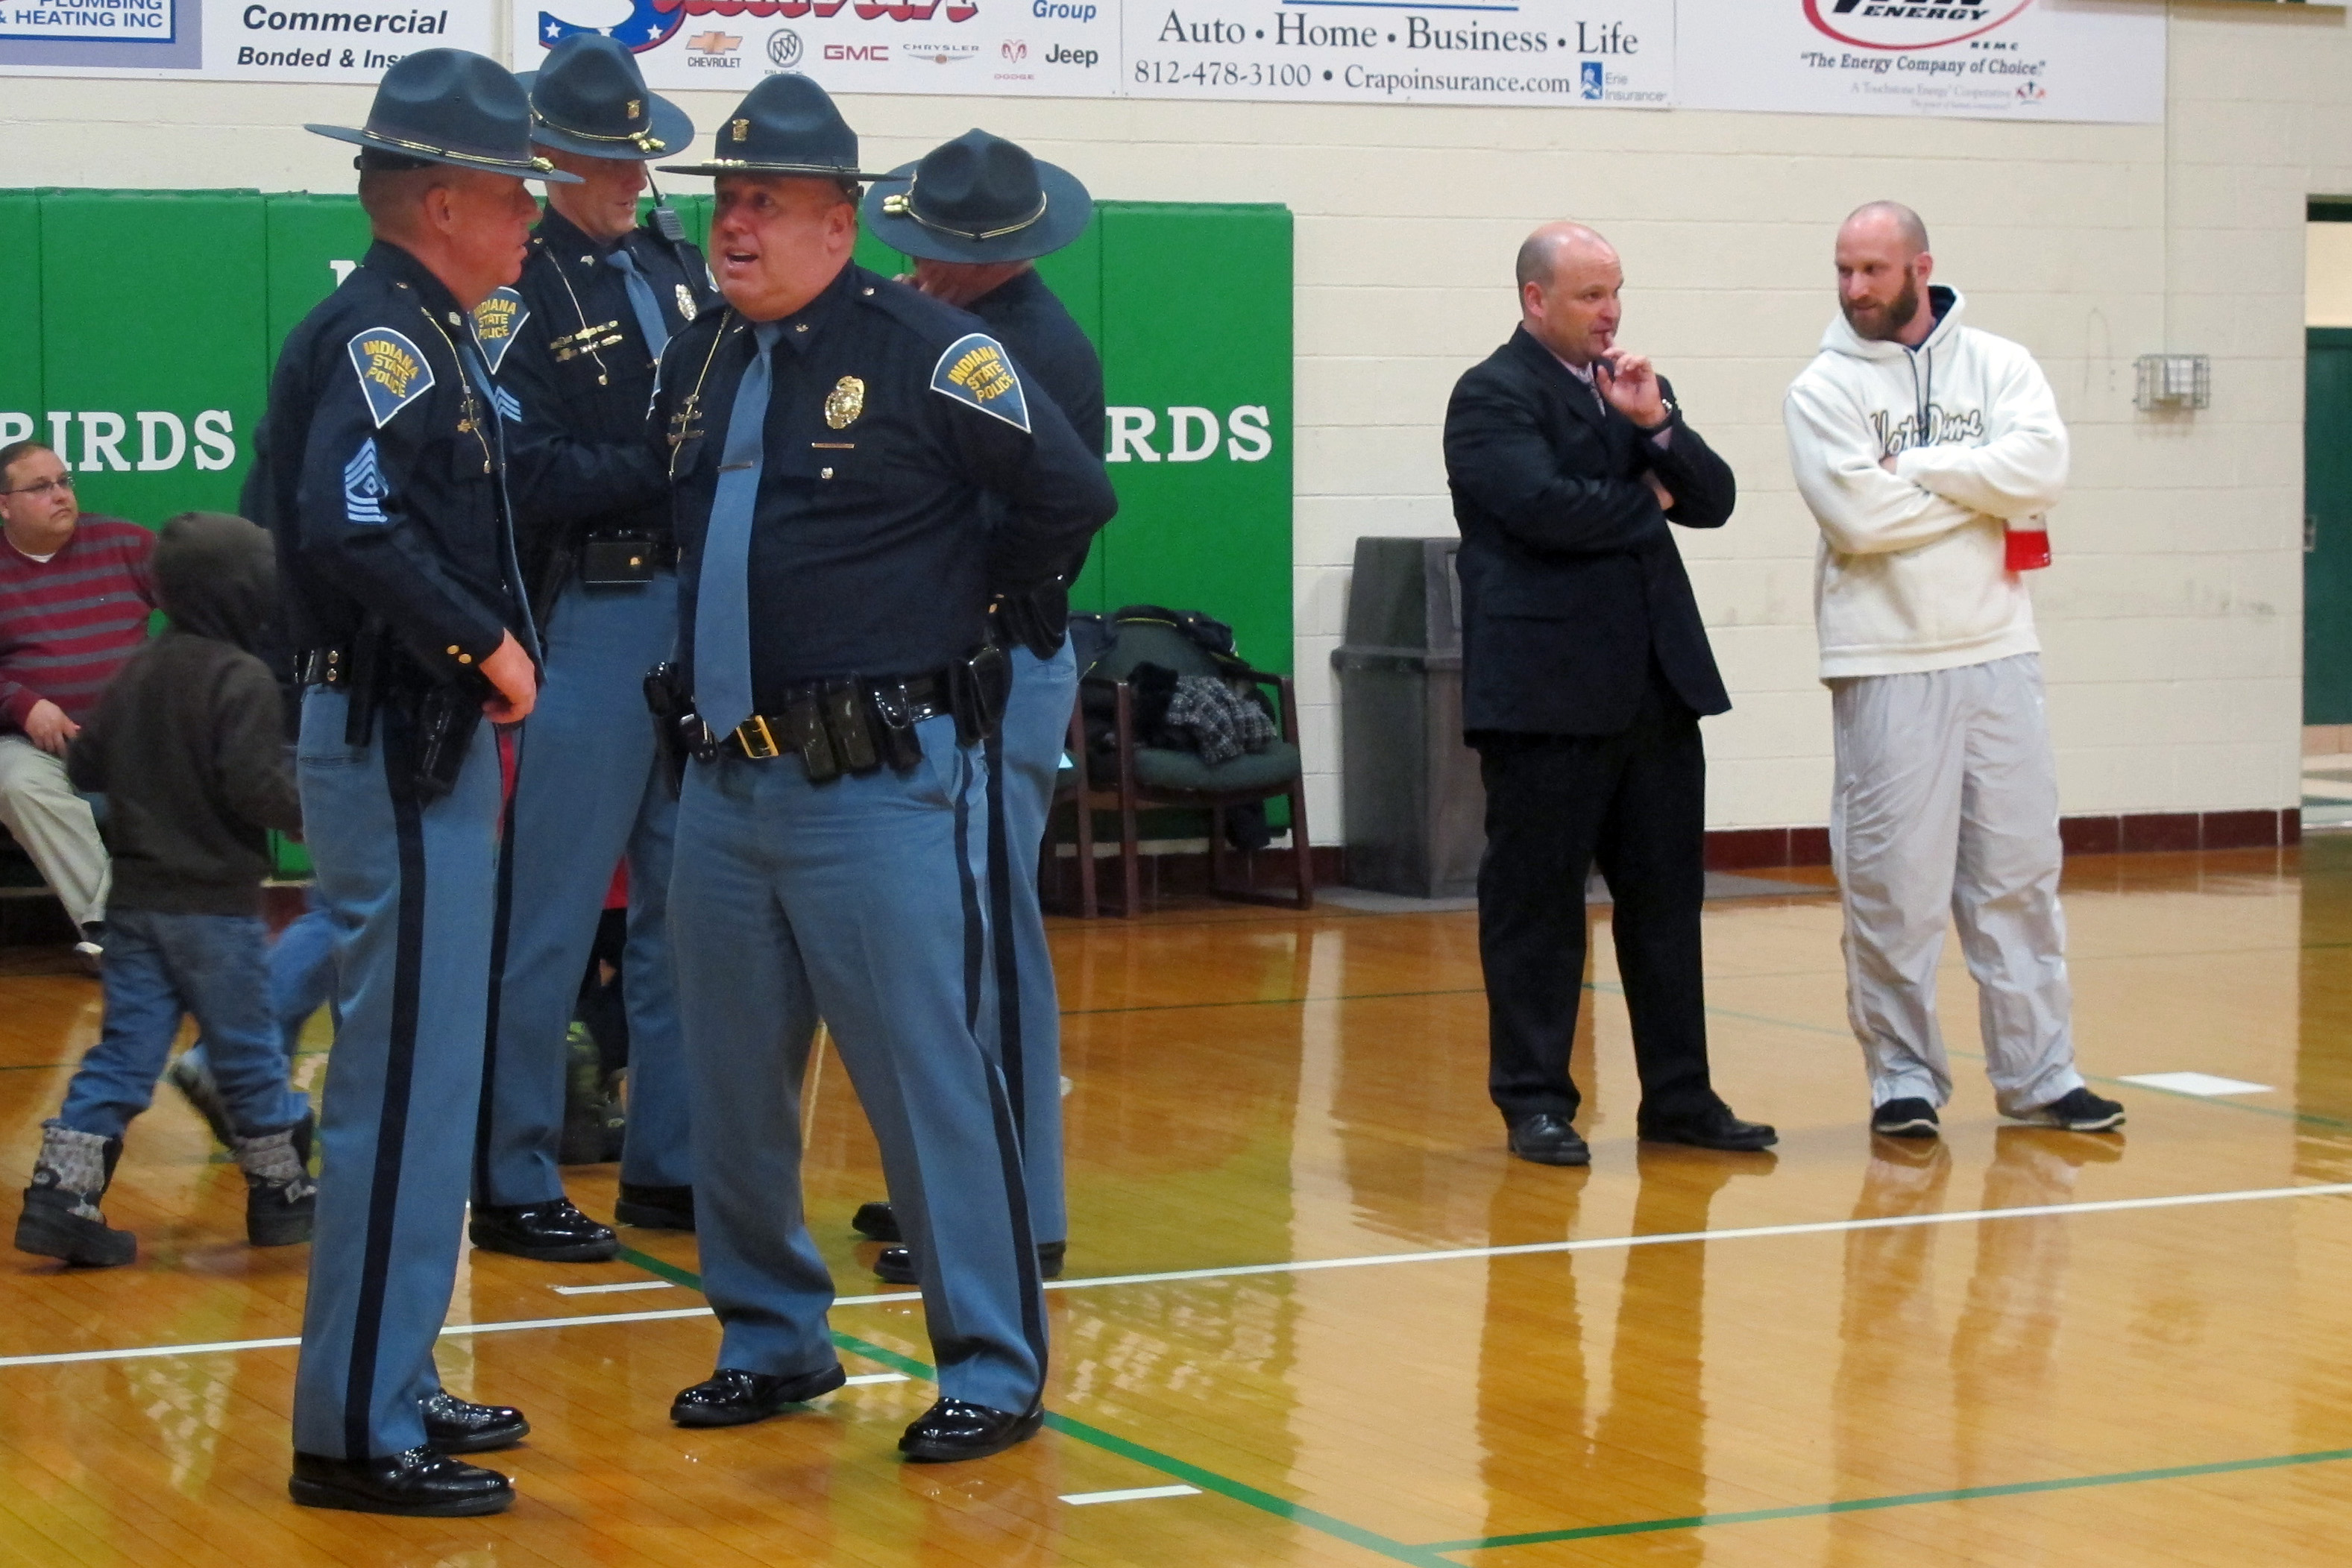 Security metal detector school - More Than 30 Law Enforcement Personnel Provided Security At The Northeast School Corporation Board Of Trustees